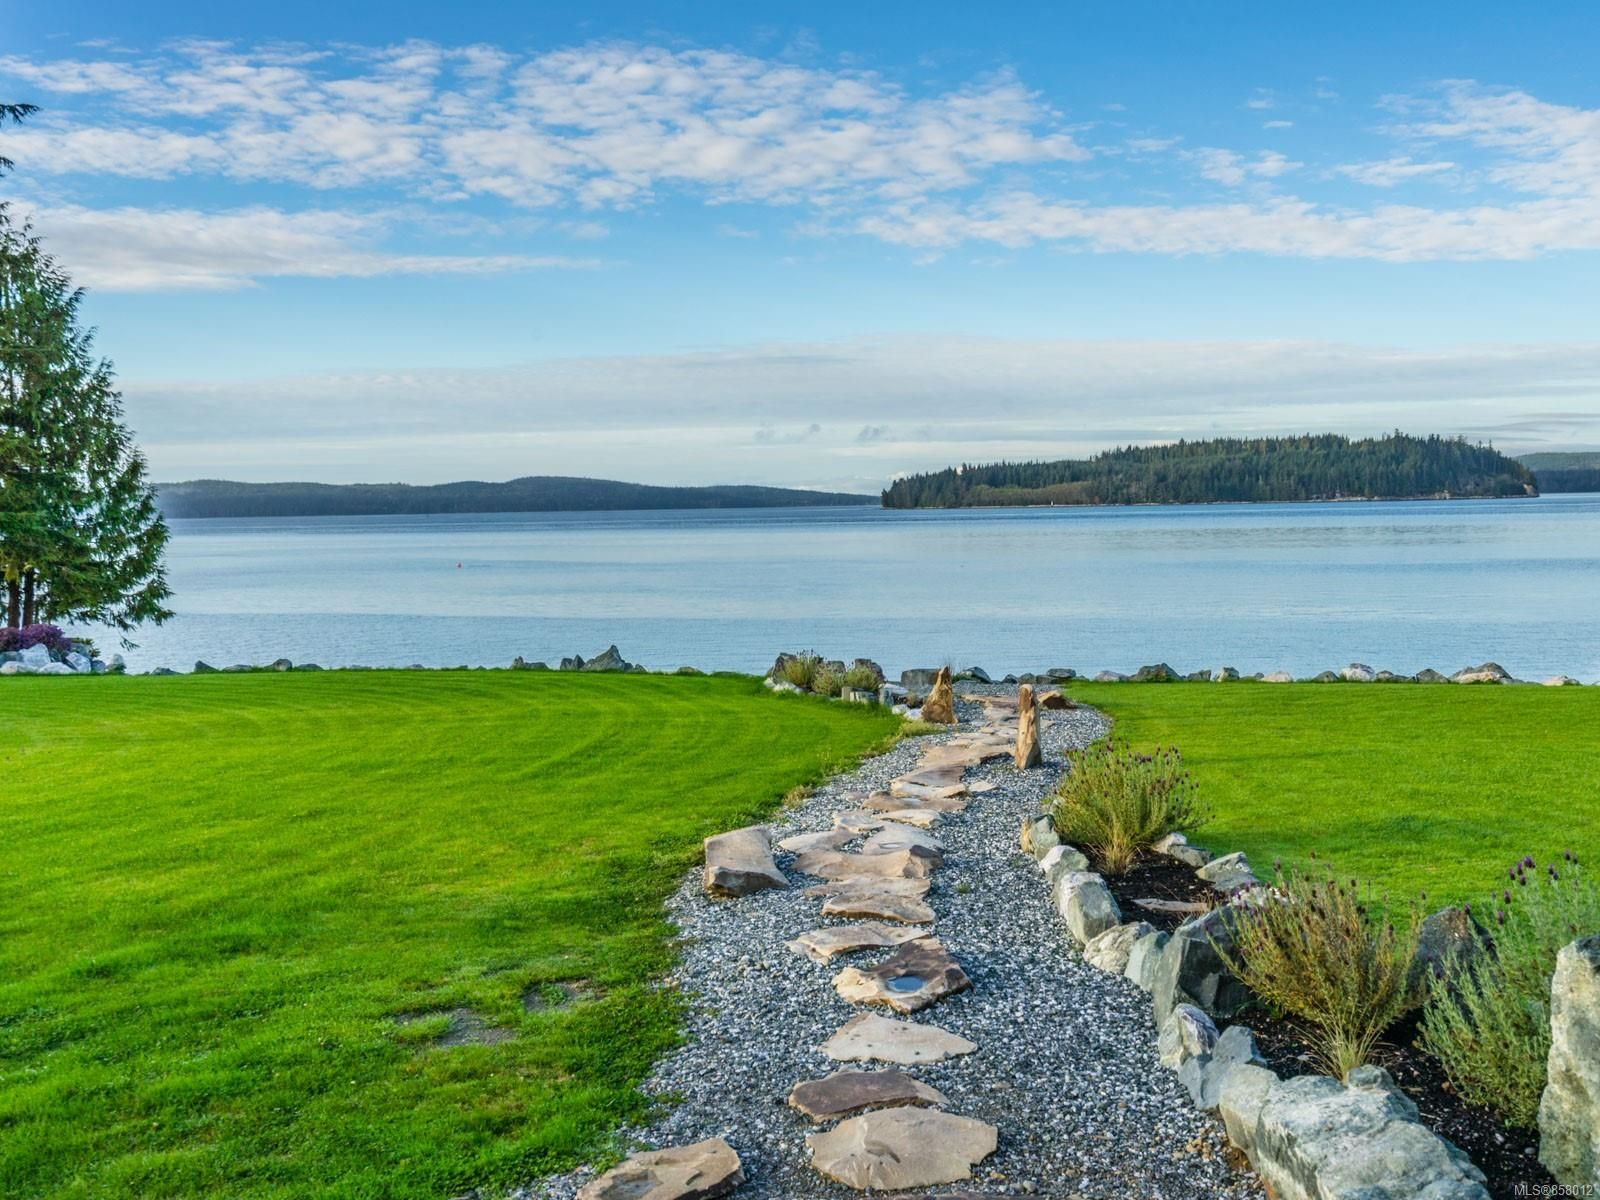 Photo 72: Photos: 6030 MINE Rd in : NI Port McNeill House for sale (North Island)  : MLS®# 858012